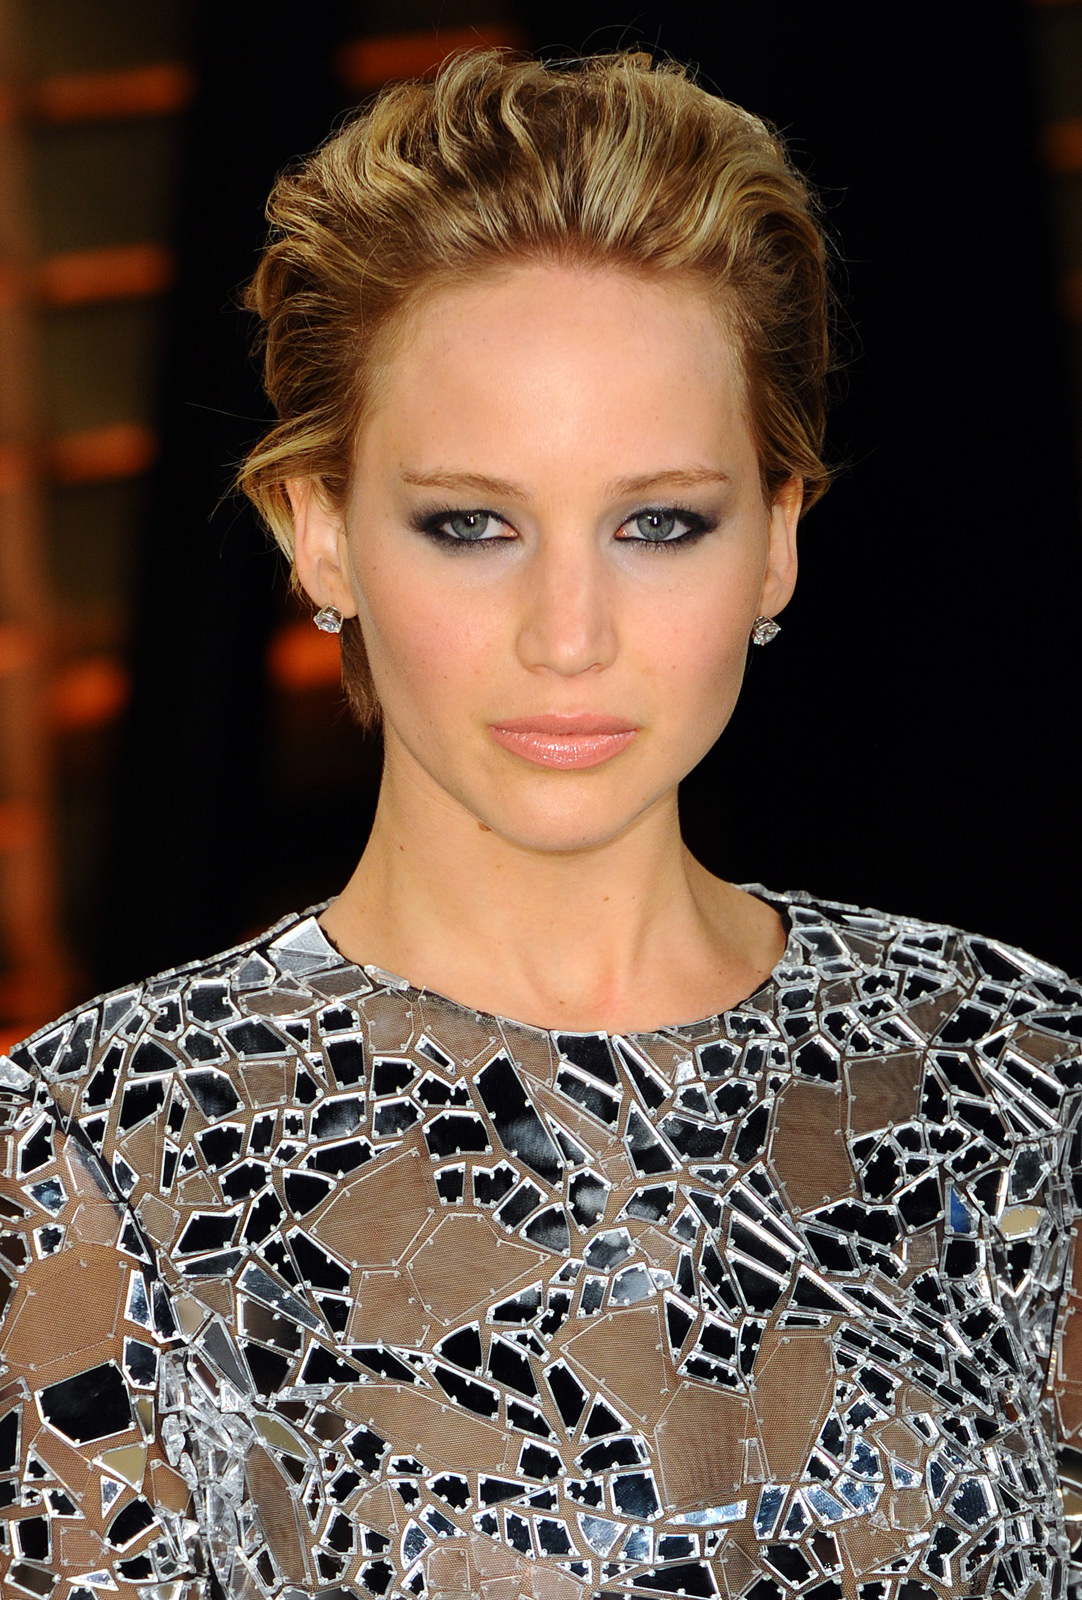 Jennifer Lawrence Photo Gallery